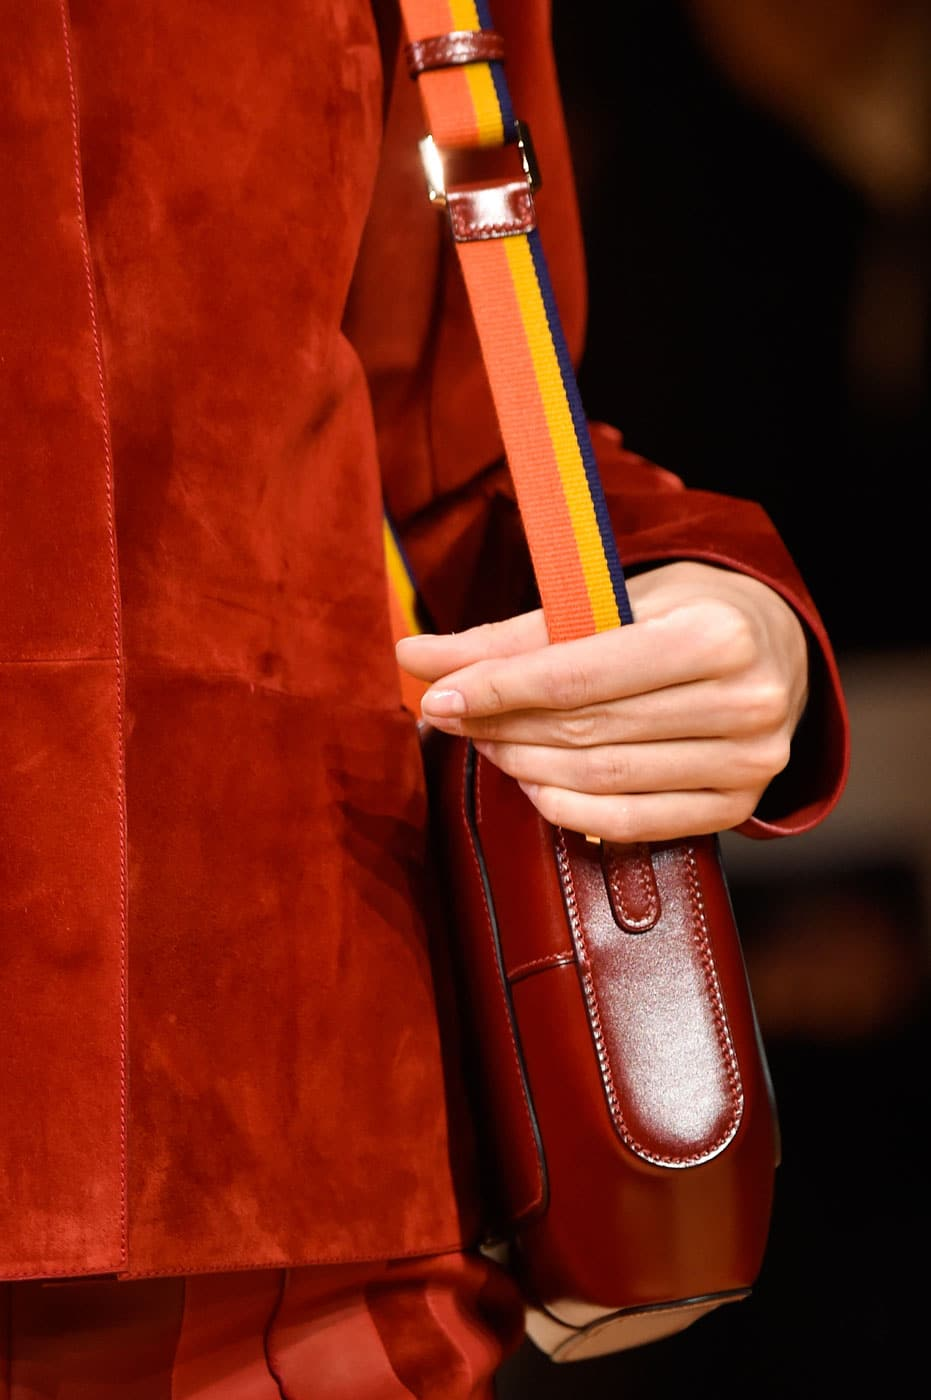 cheap authentic hermes bags - Hermes Fall/Winter 2015 Runway Bag Collection Featuring Sac ...